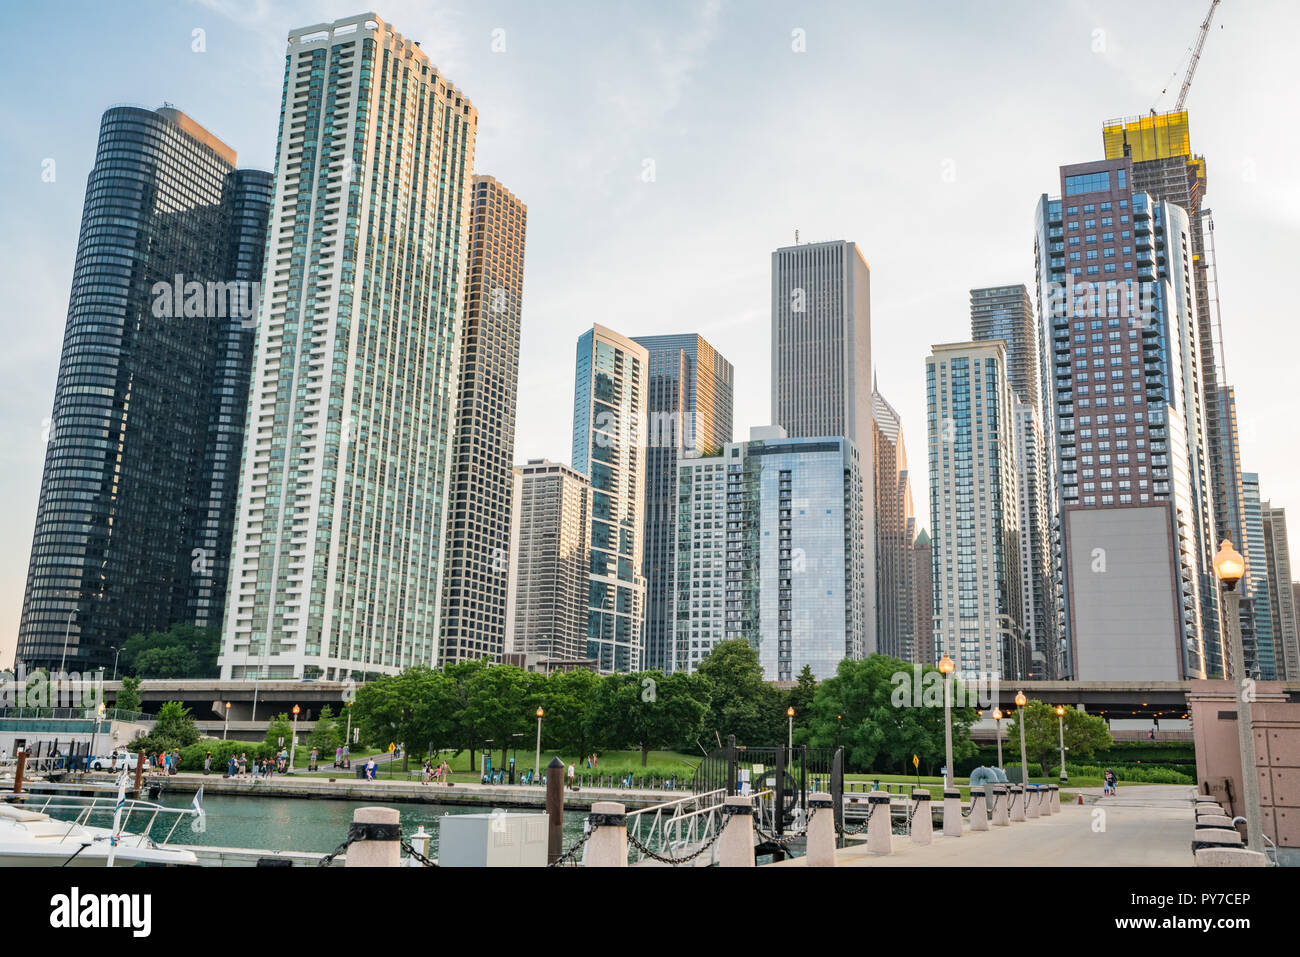 CHICAGO, IL - JULY 12, 2018: Downtown Chicago along Lake Michigan near DuSable Harbor. - Stock Image